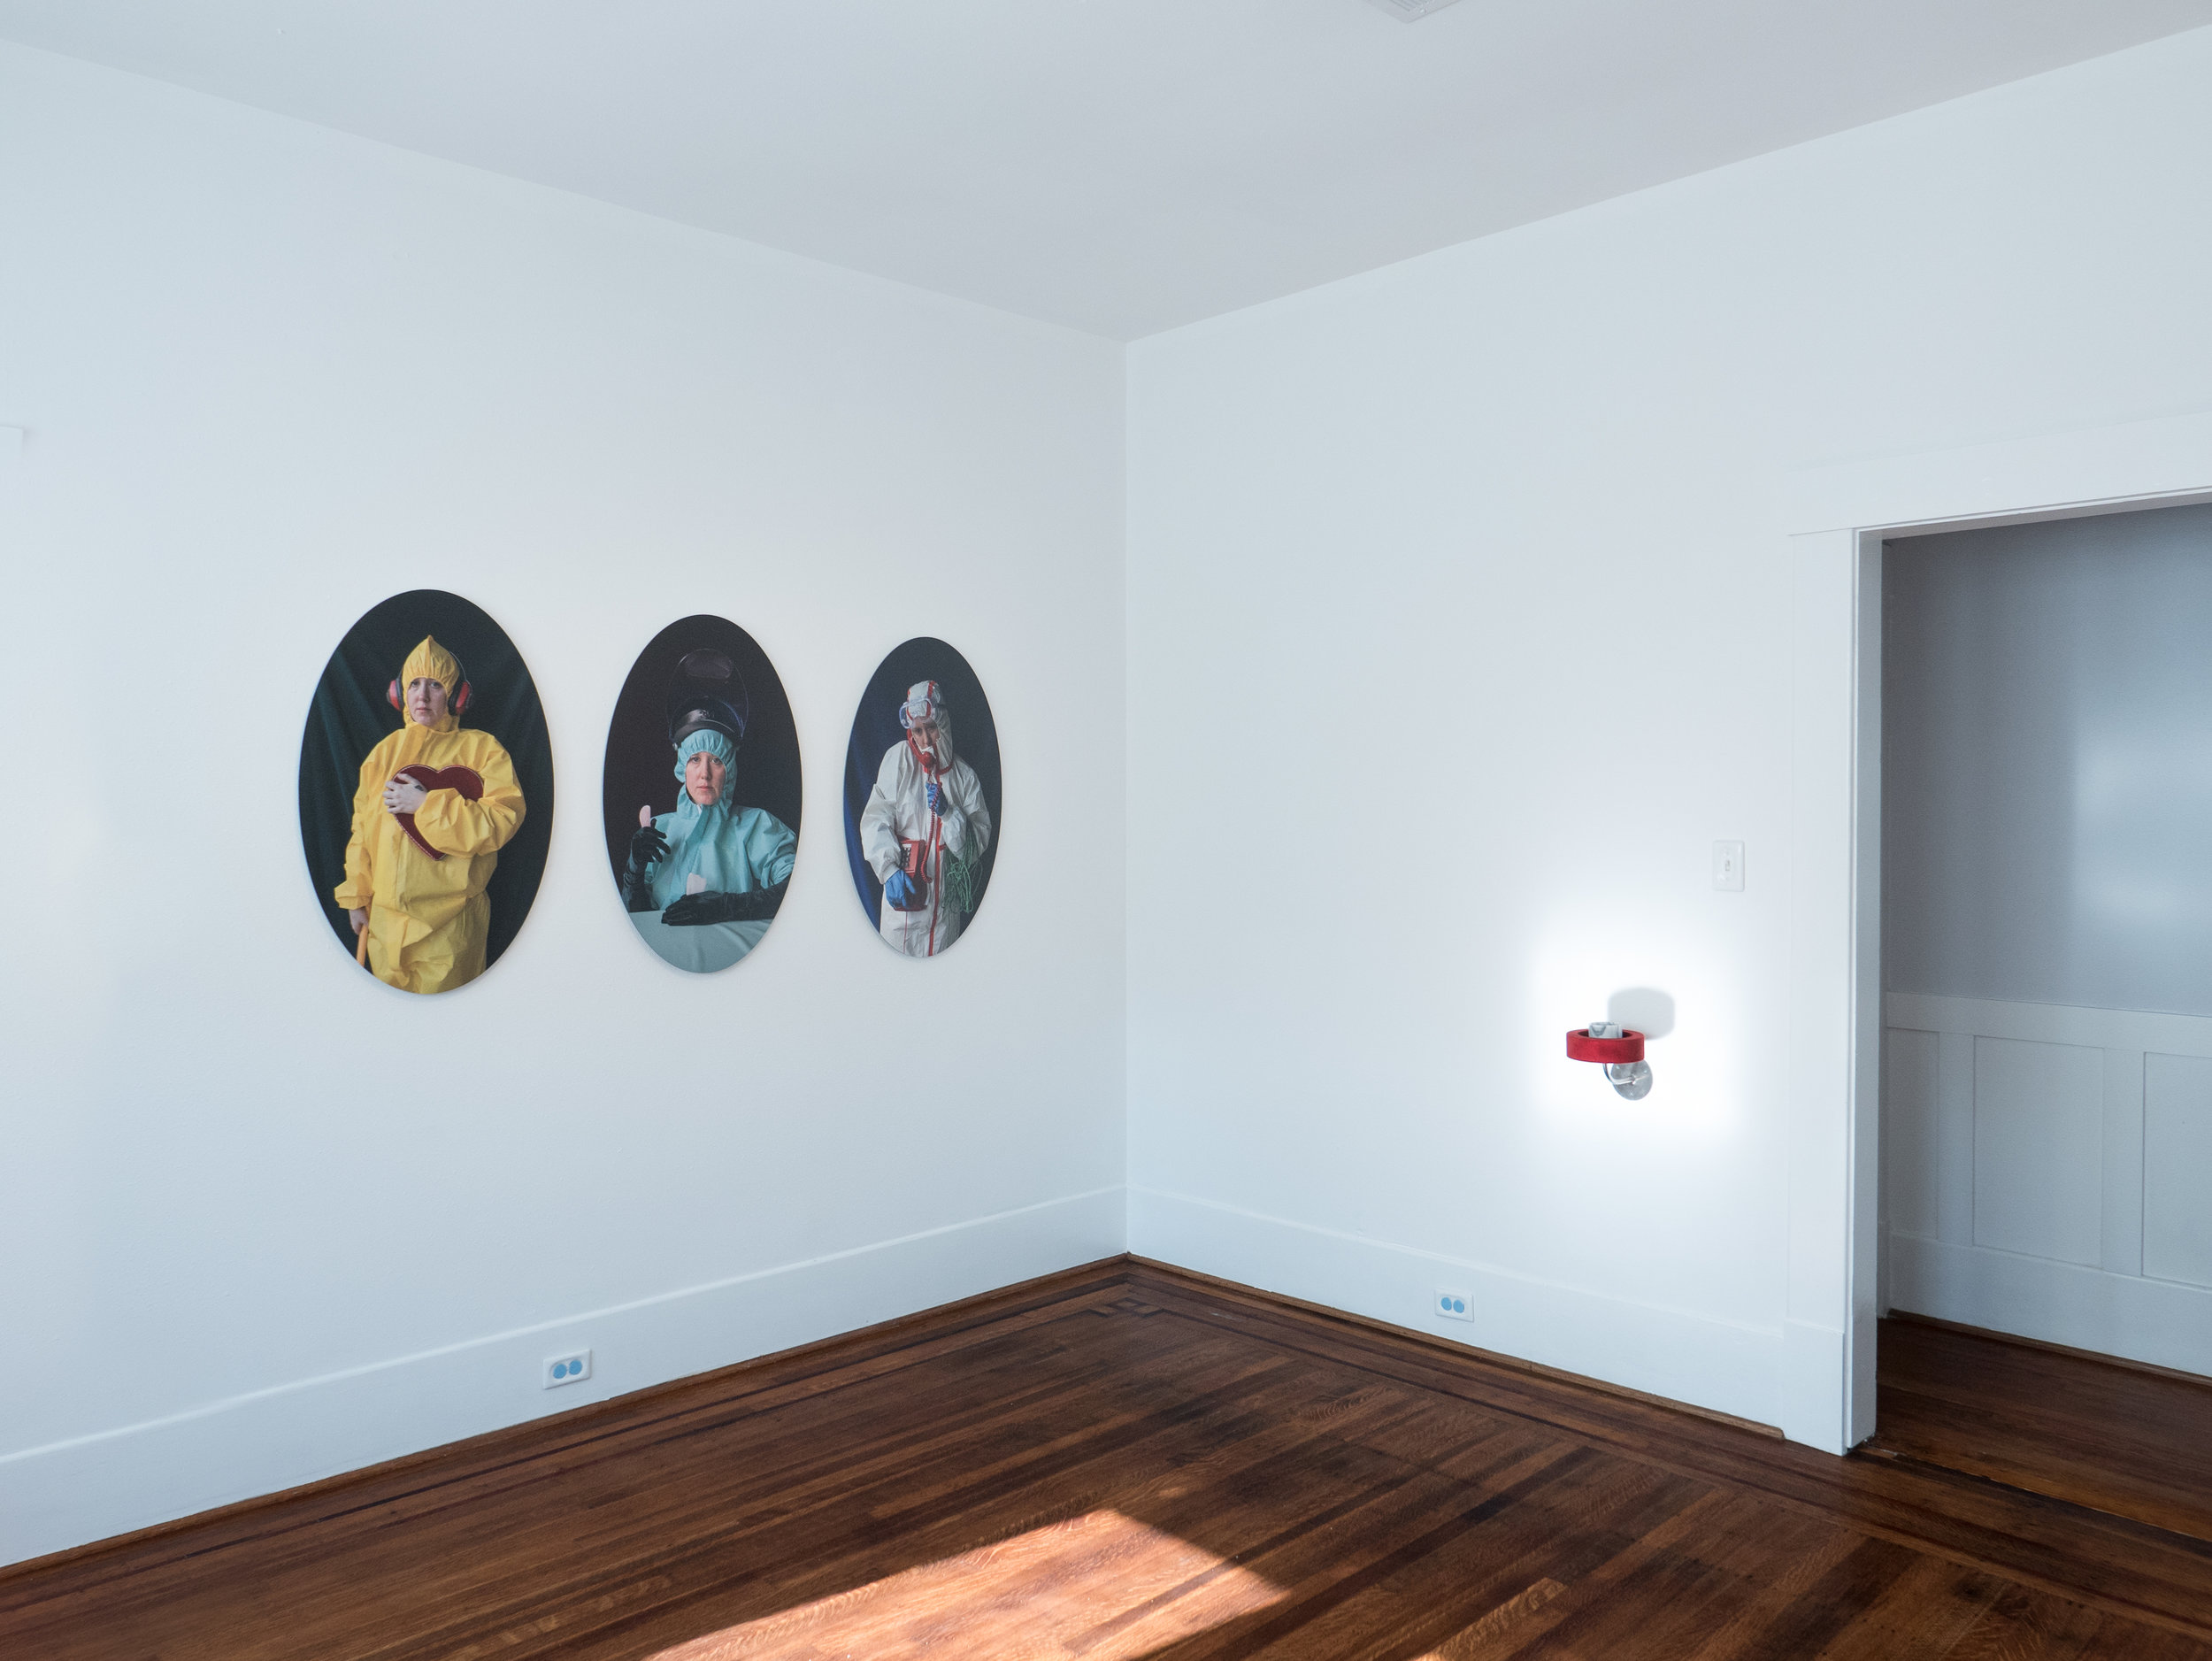 smother Installation Images (16 of 24).jpg